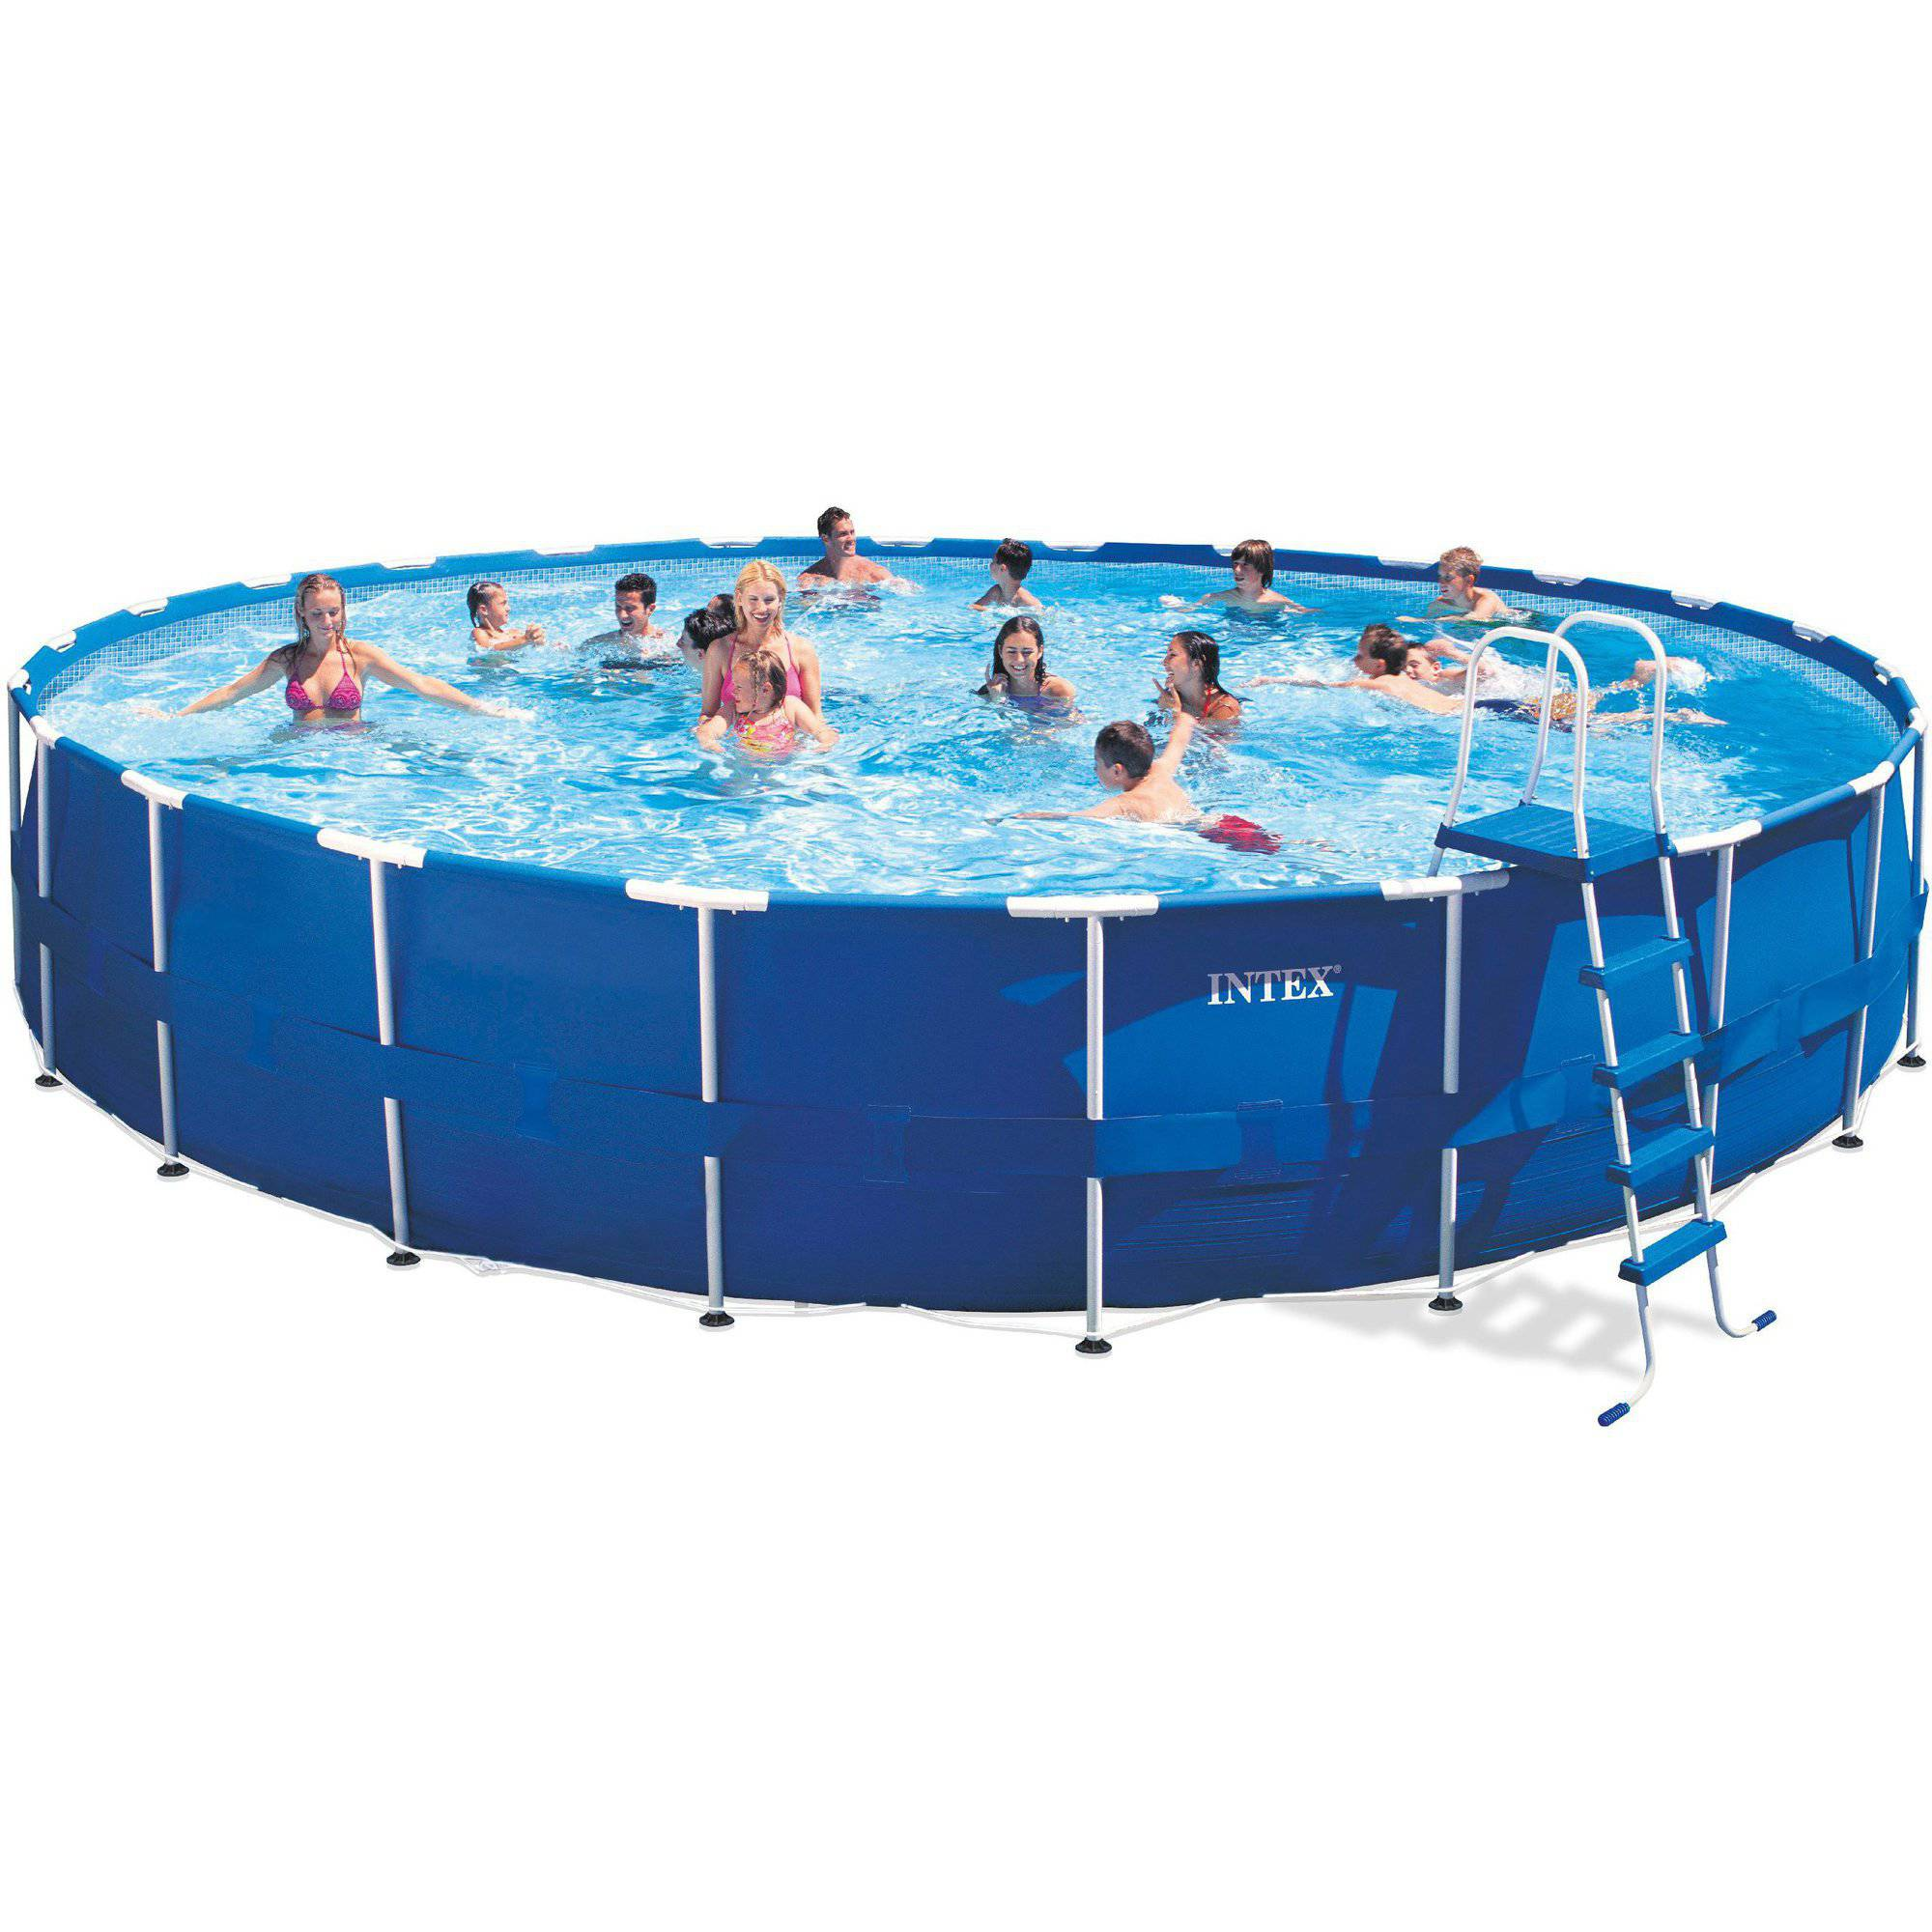 Intex 24 X 52 Metal Frame Above Ground Swimming Pool With Filter Pump